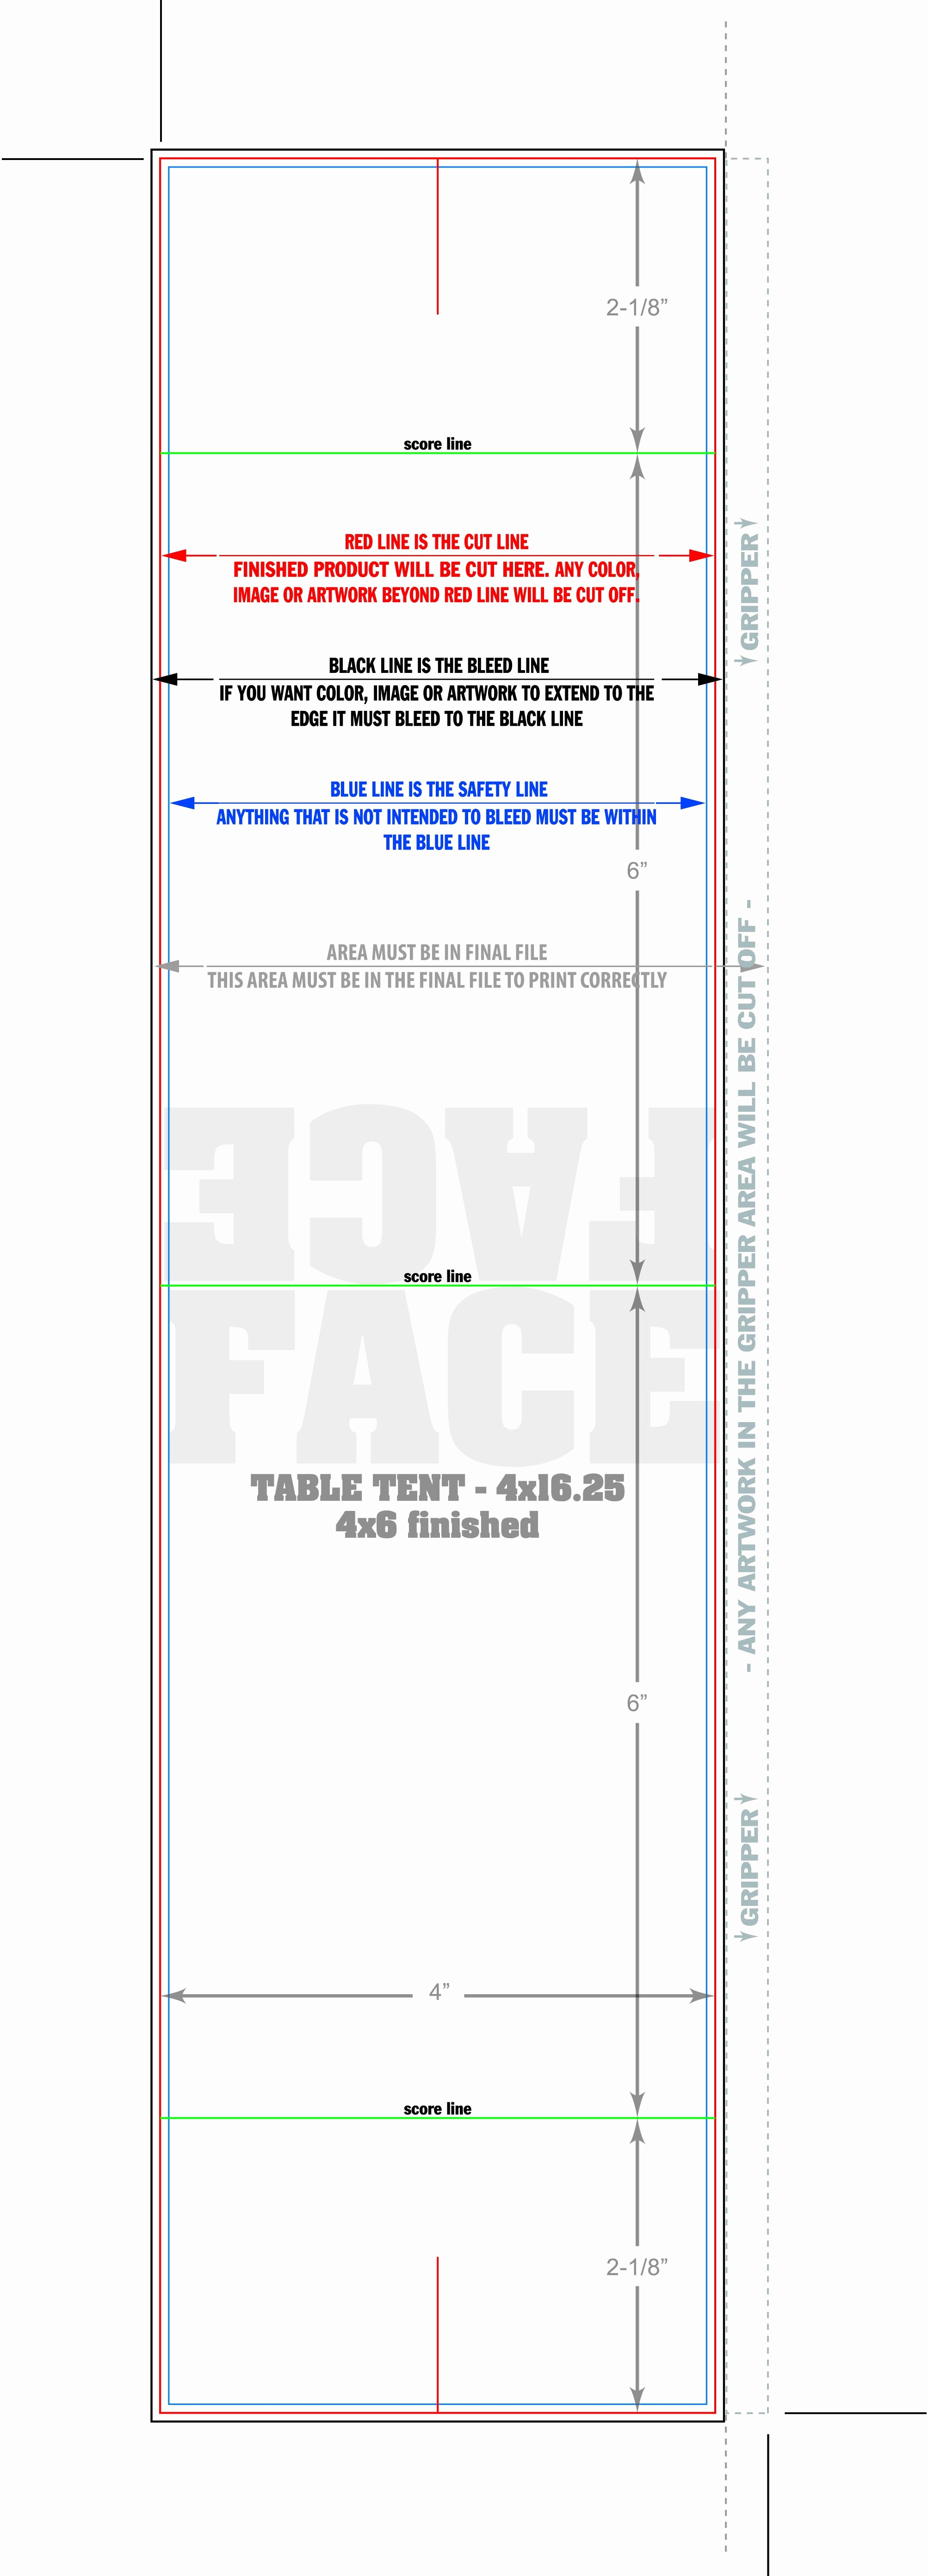 Table Tent Name Cards Template Elegant Table Tent Cards Templates